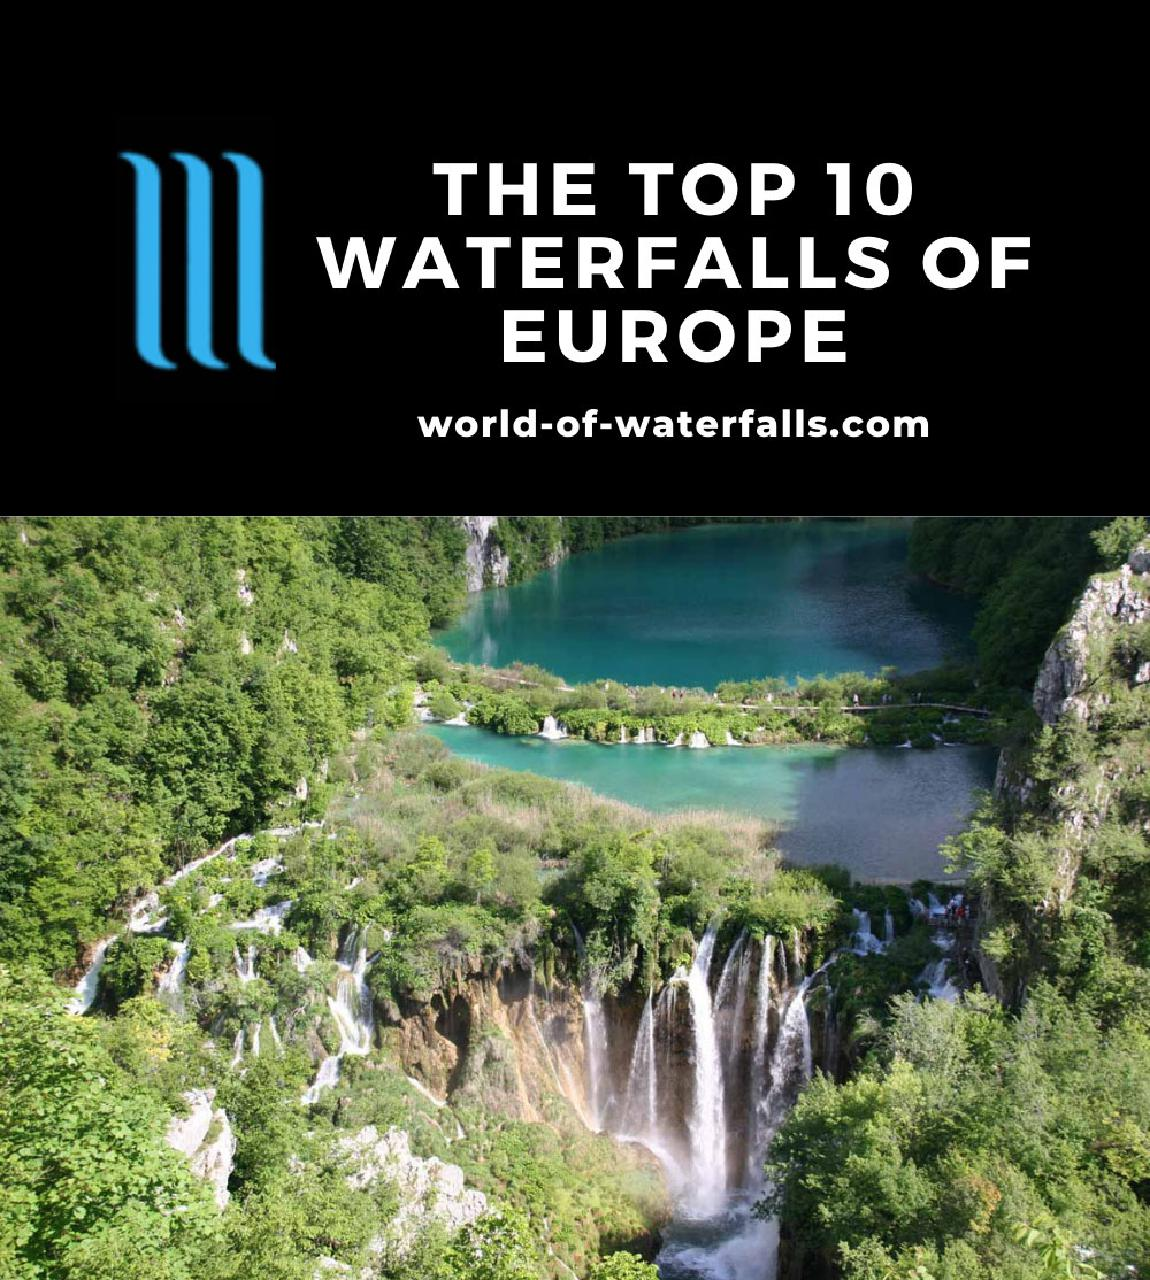 The Top 10 Waterfalls of Europe